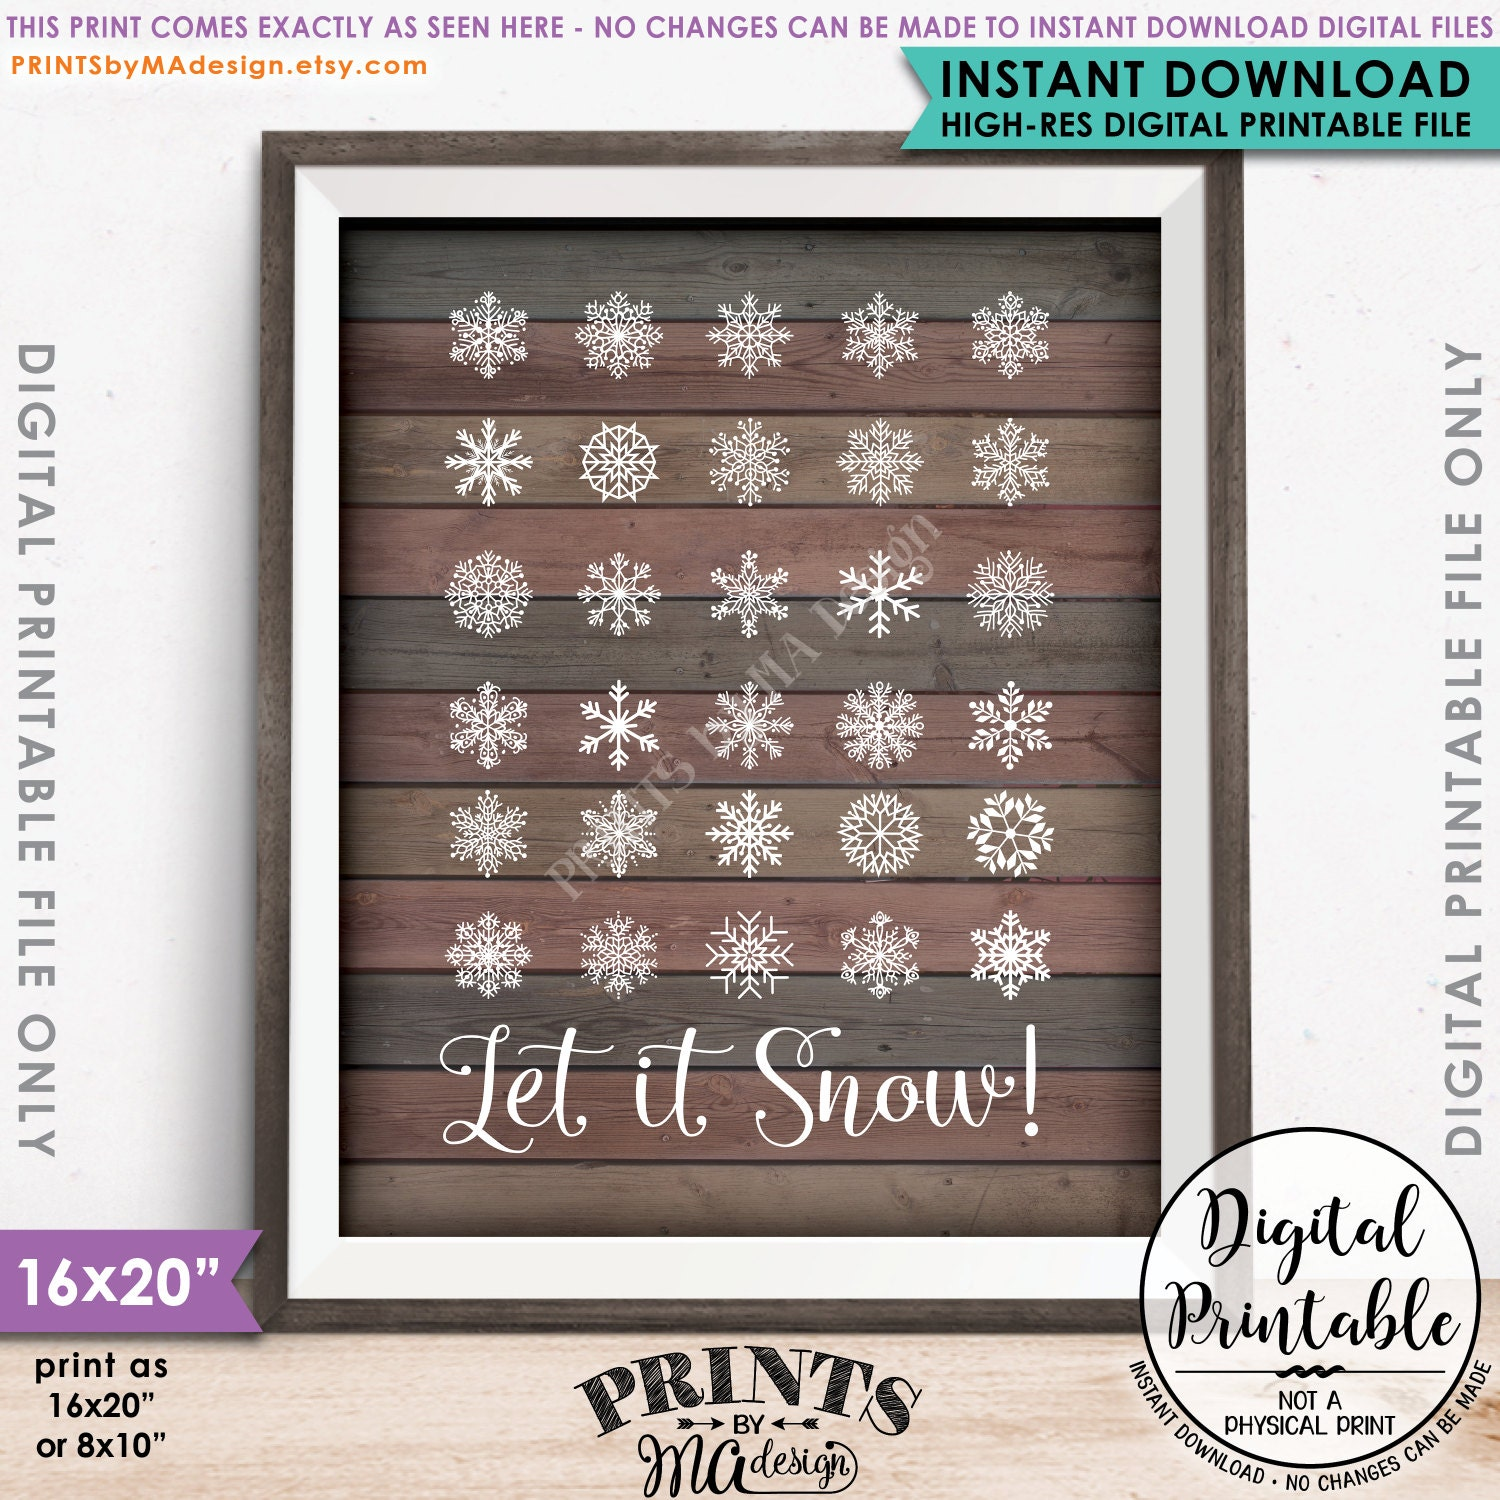 Snowing christmas decoration let it snow - Let It Snow Sign Winter Decor Christmas Decoration Snowing Snow Flurry Snowflakes 8x10 16x20 Rustic Wood Style Instant Download Printable